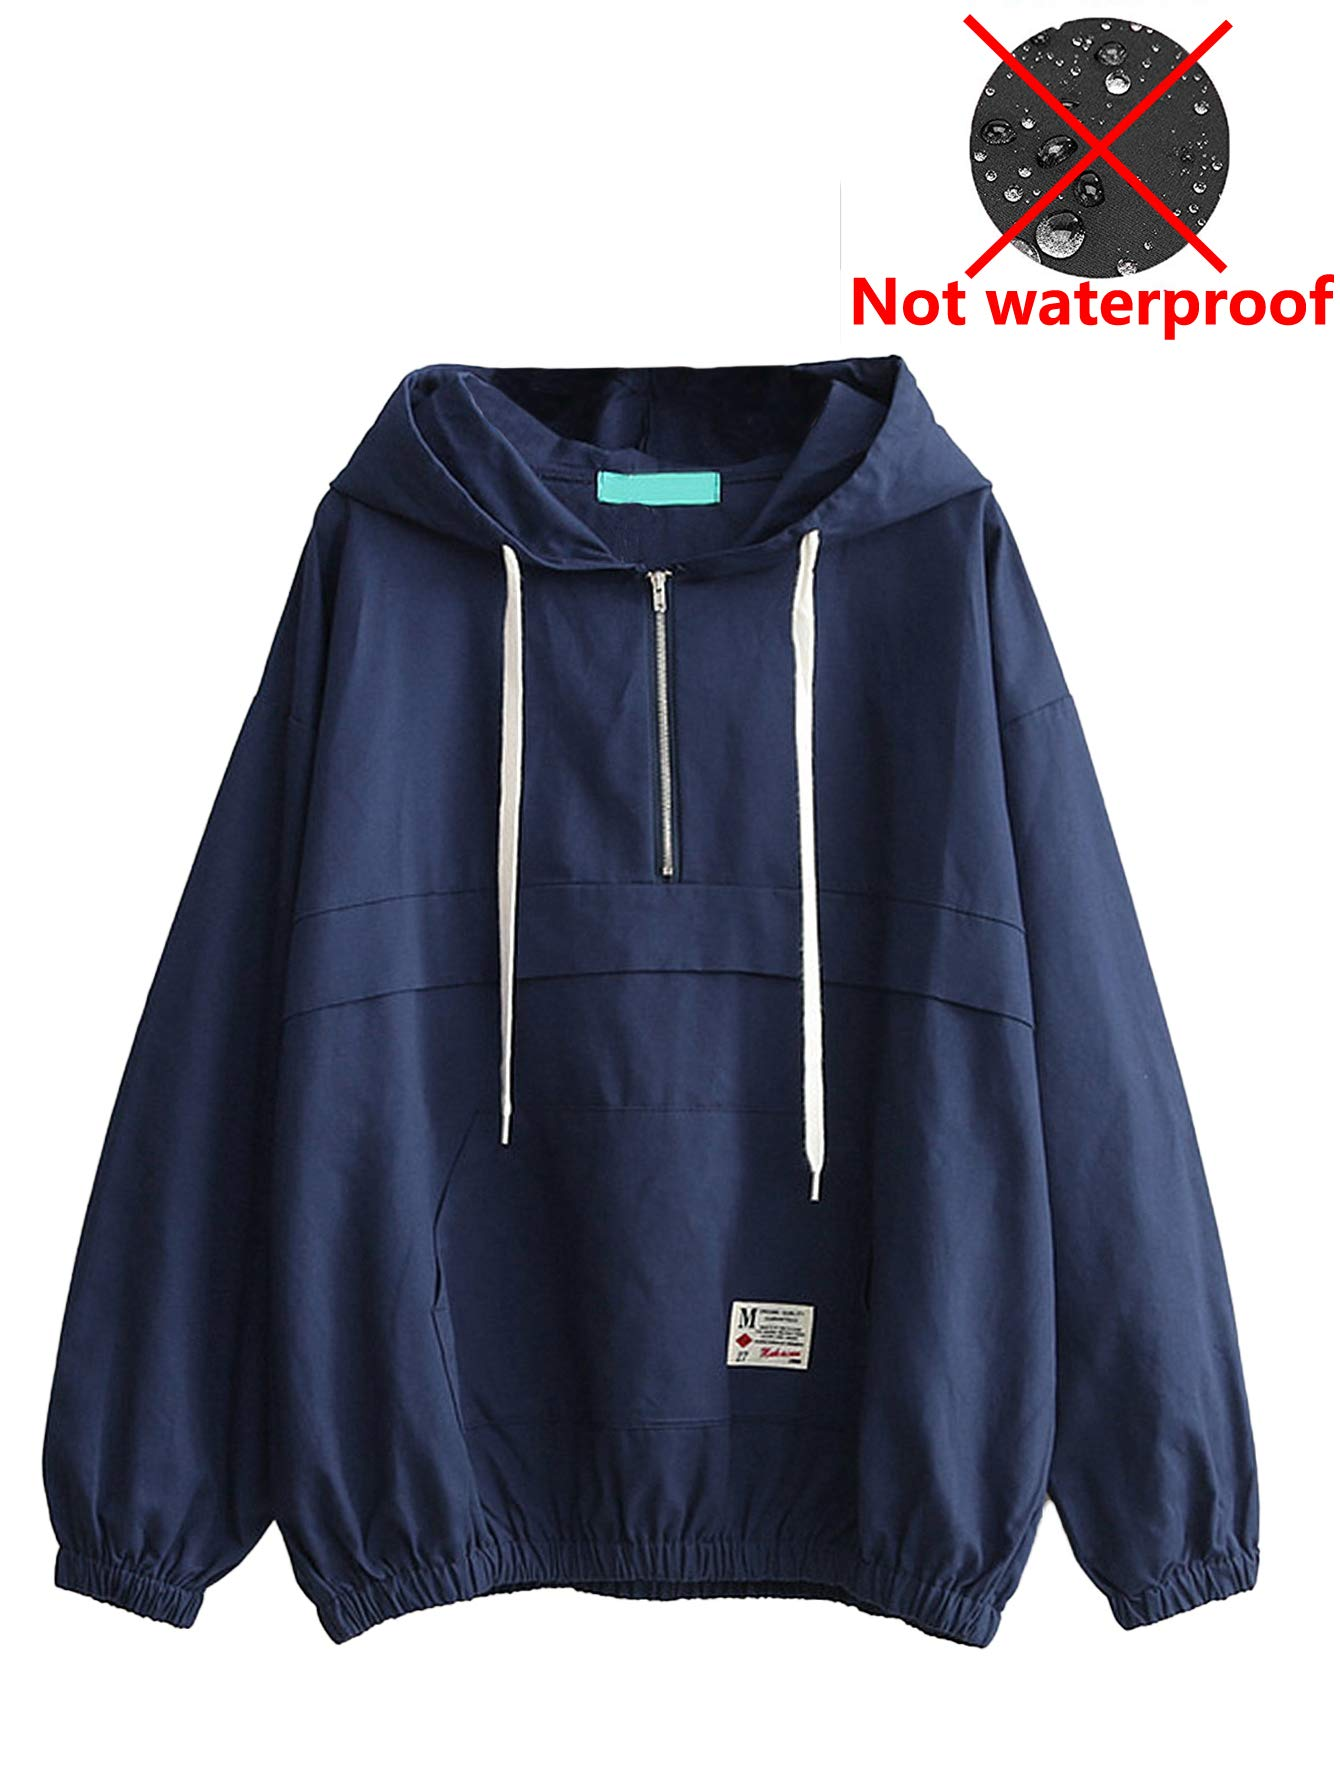 Romwe Women's Lightweight Kangaroo Pocket Anorak Sports Jacket Drawstring Hooded Zip up Windproof Windbreaker Navy S by Romwe (Image #1)